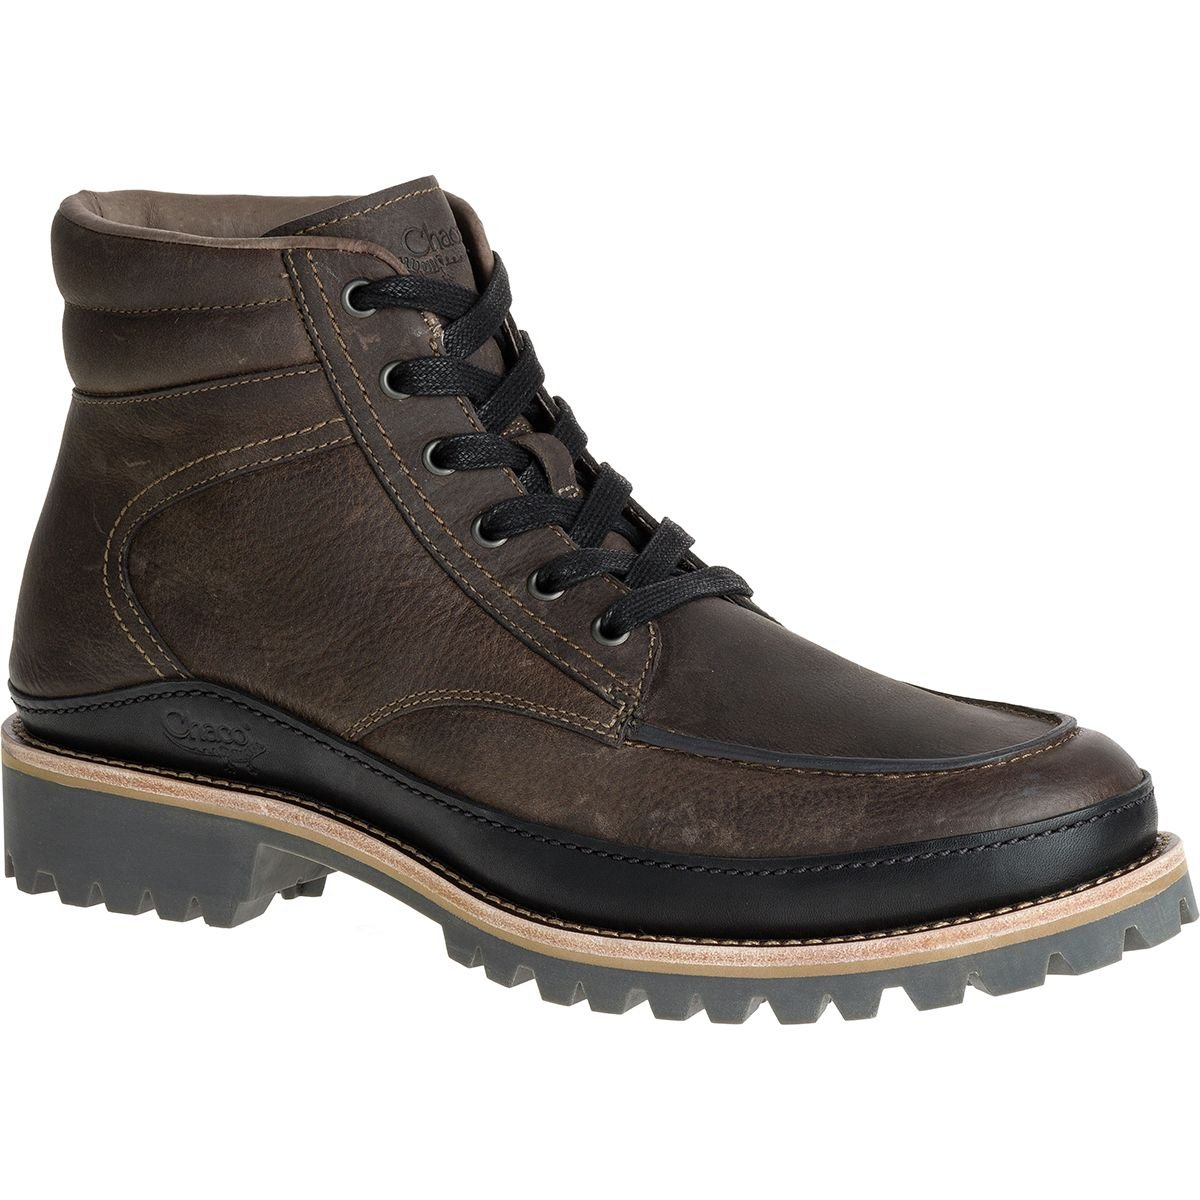 Chaco Men's Yonder-M Boot, Fossil, 11.5 M US by Chaco (Image #2)